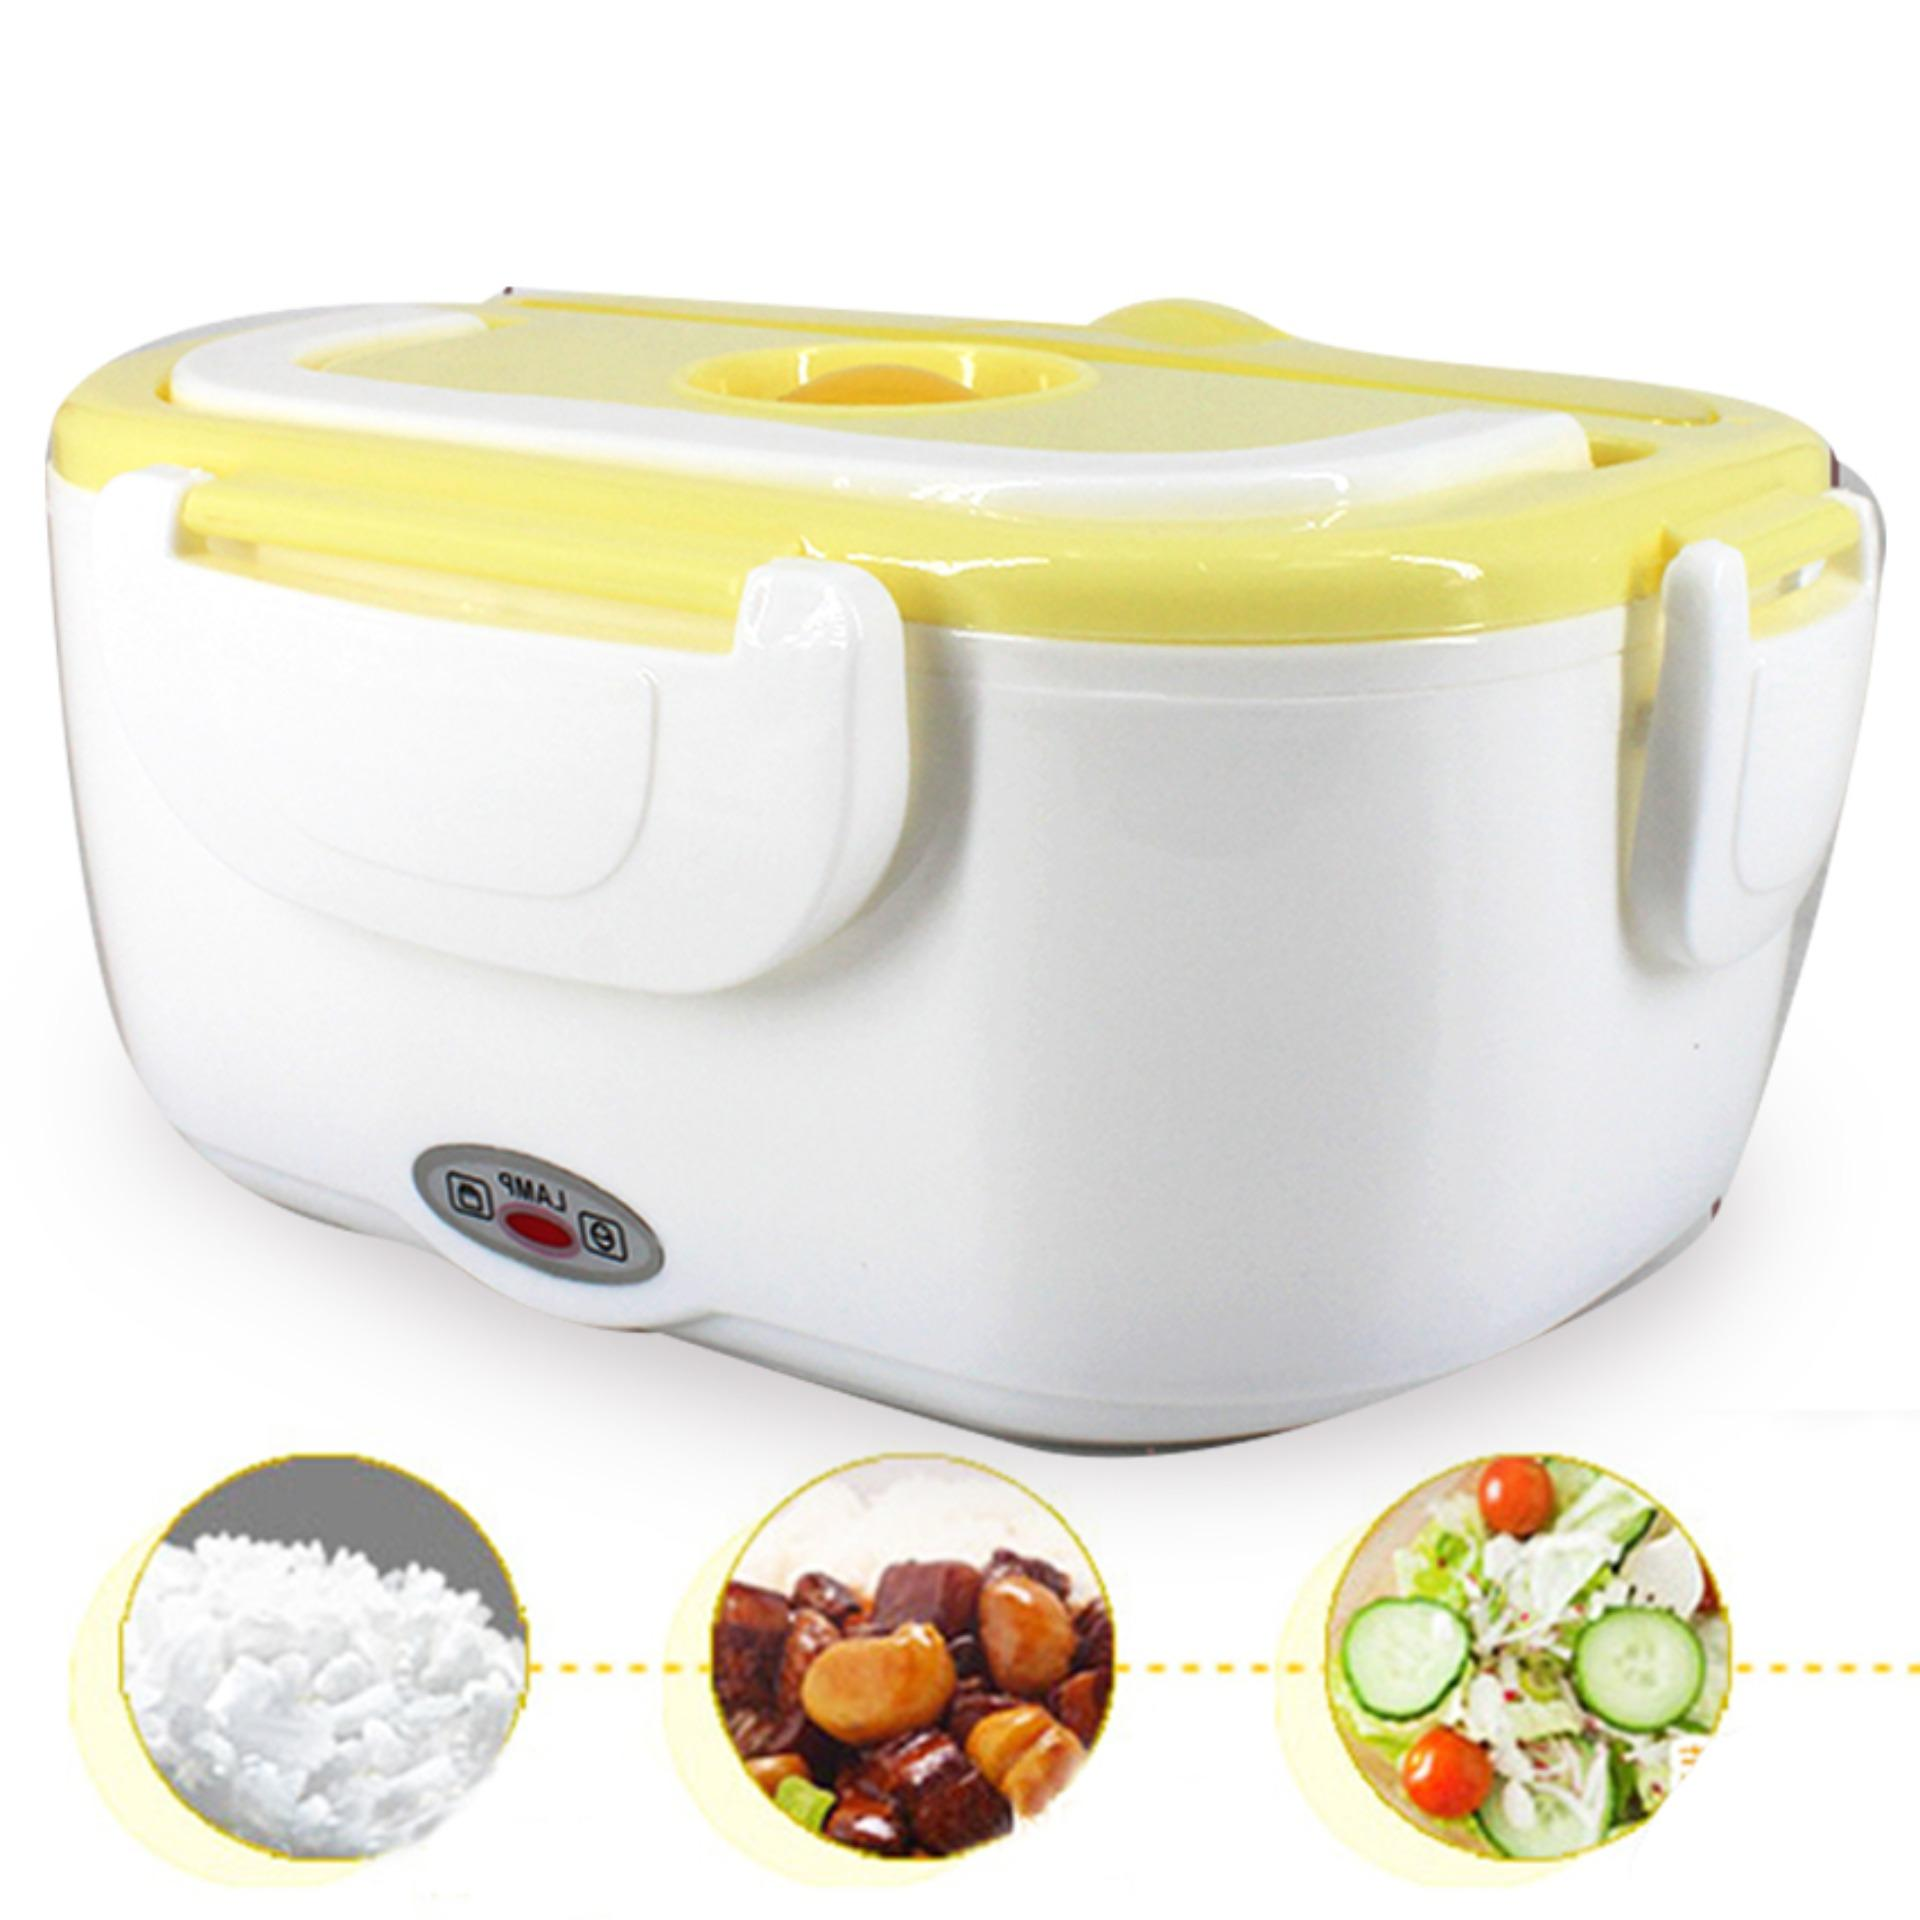 Md Portable Electric Lunch Box Food Container Food Warmer Container - 669 By Mega Deal.